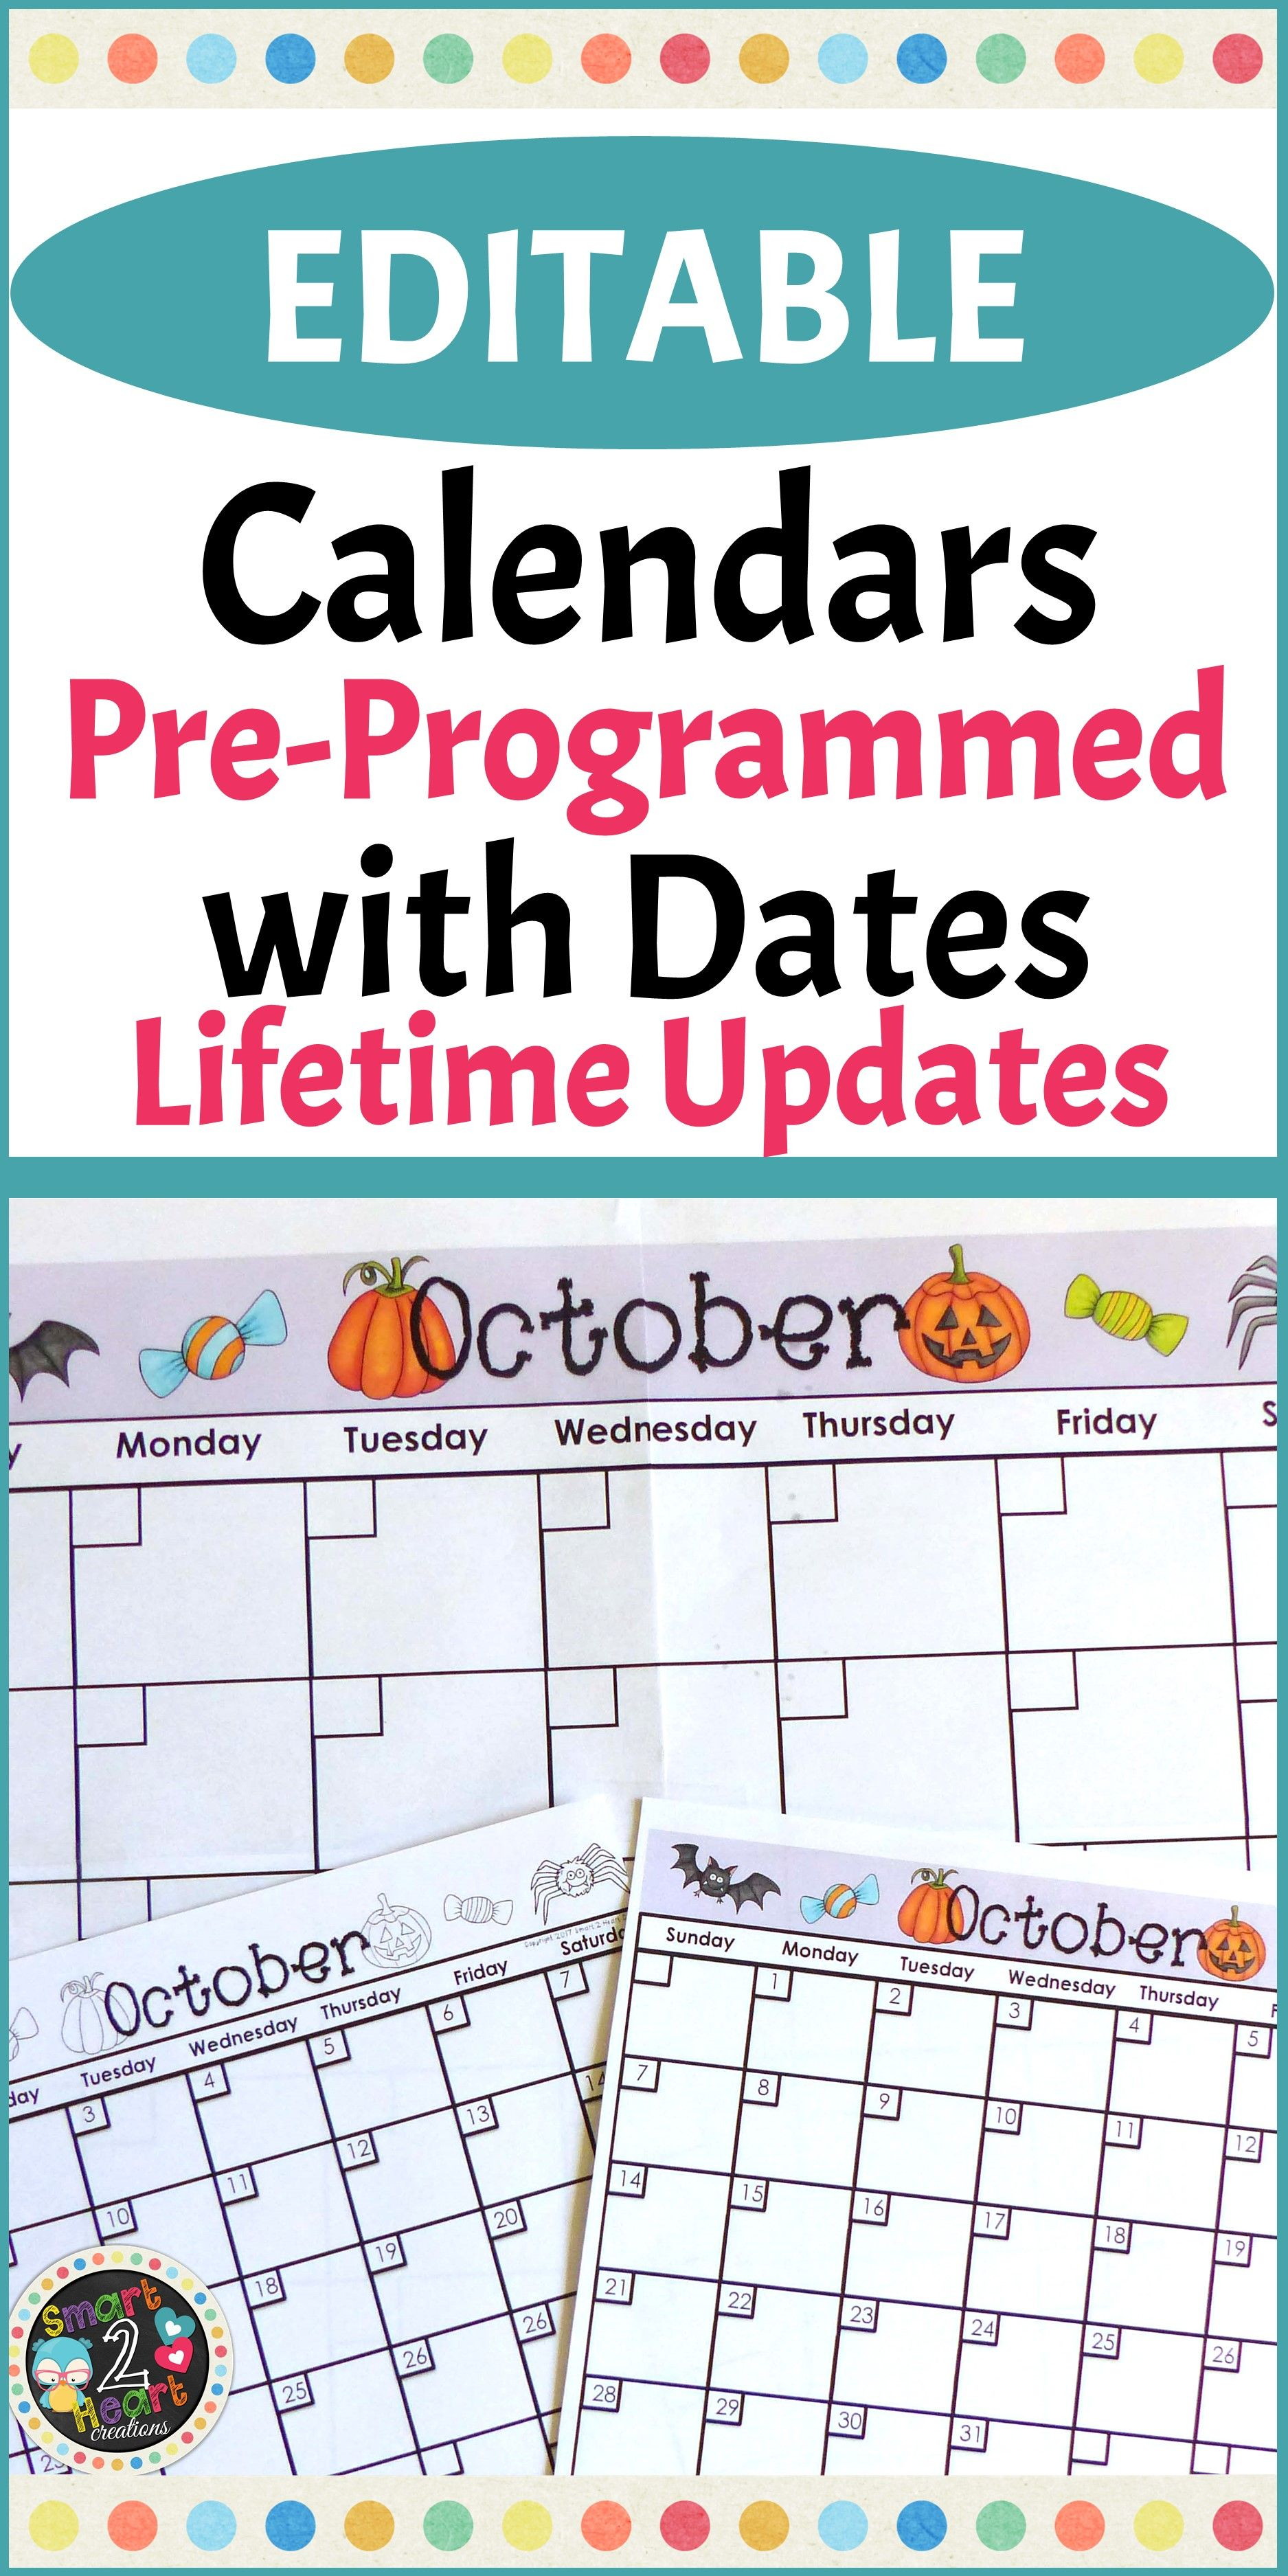 Editable Calendars 2019-2020 (Lifetime Updates) | Classroom